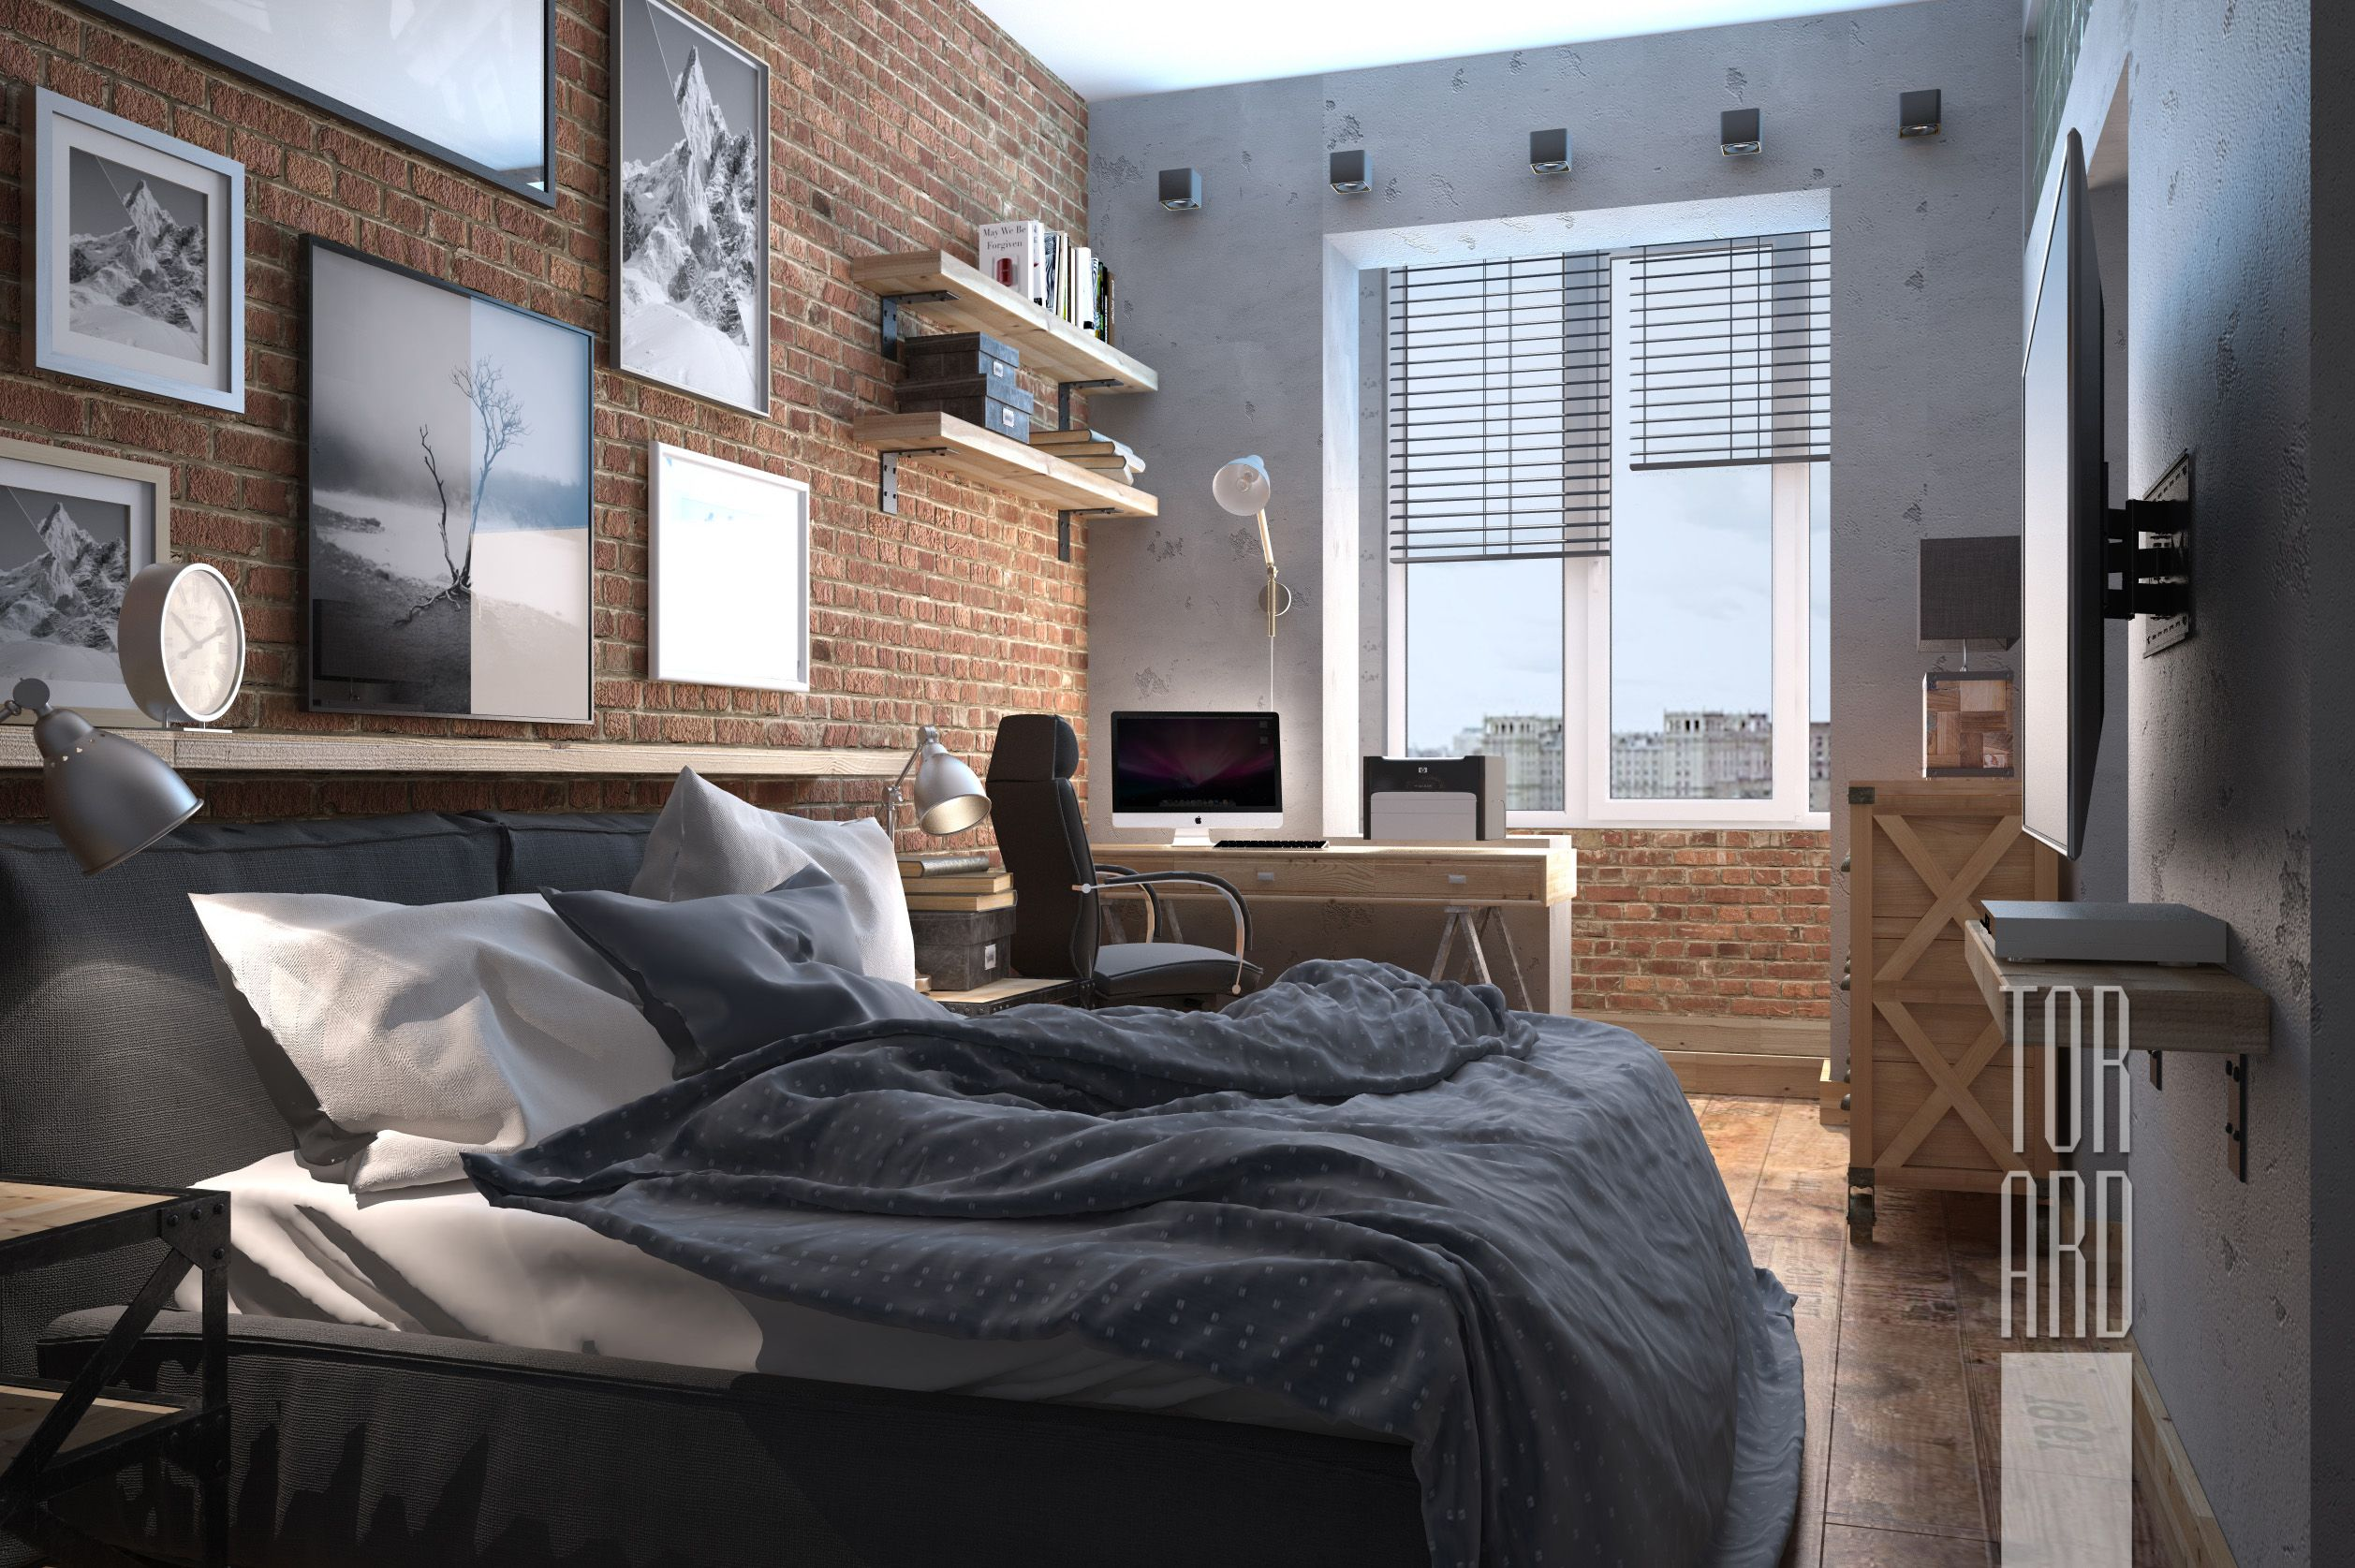 loft apartments in moscow • brick wall • bedroom design • bachelor